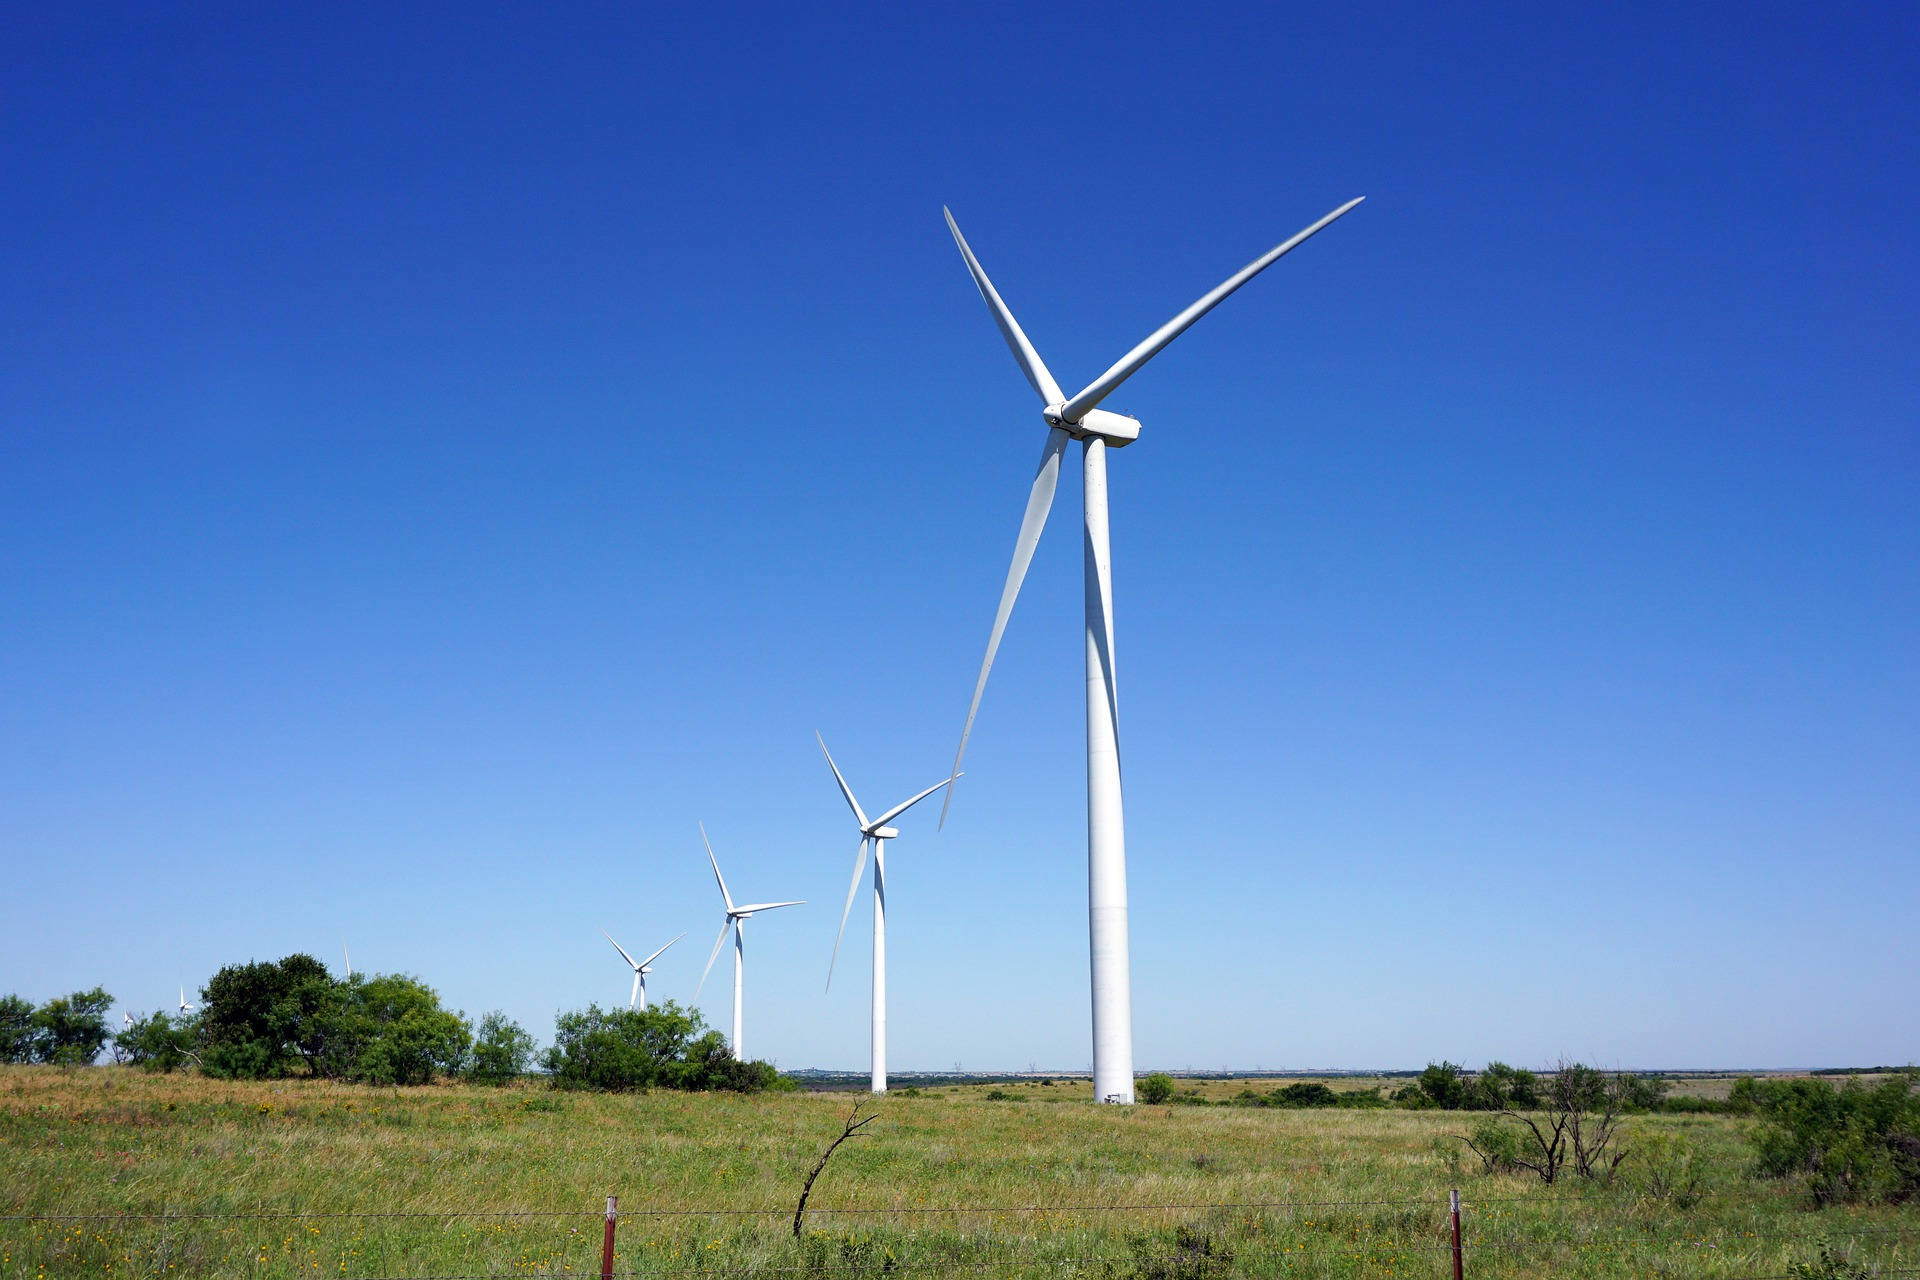 Texas is the nation's leader in wind capacity